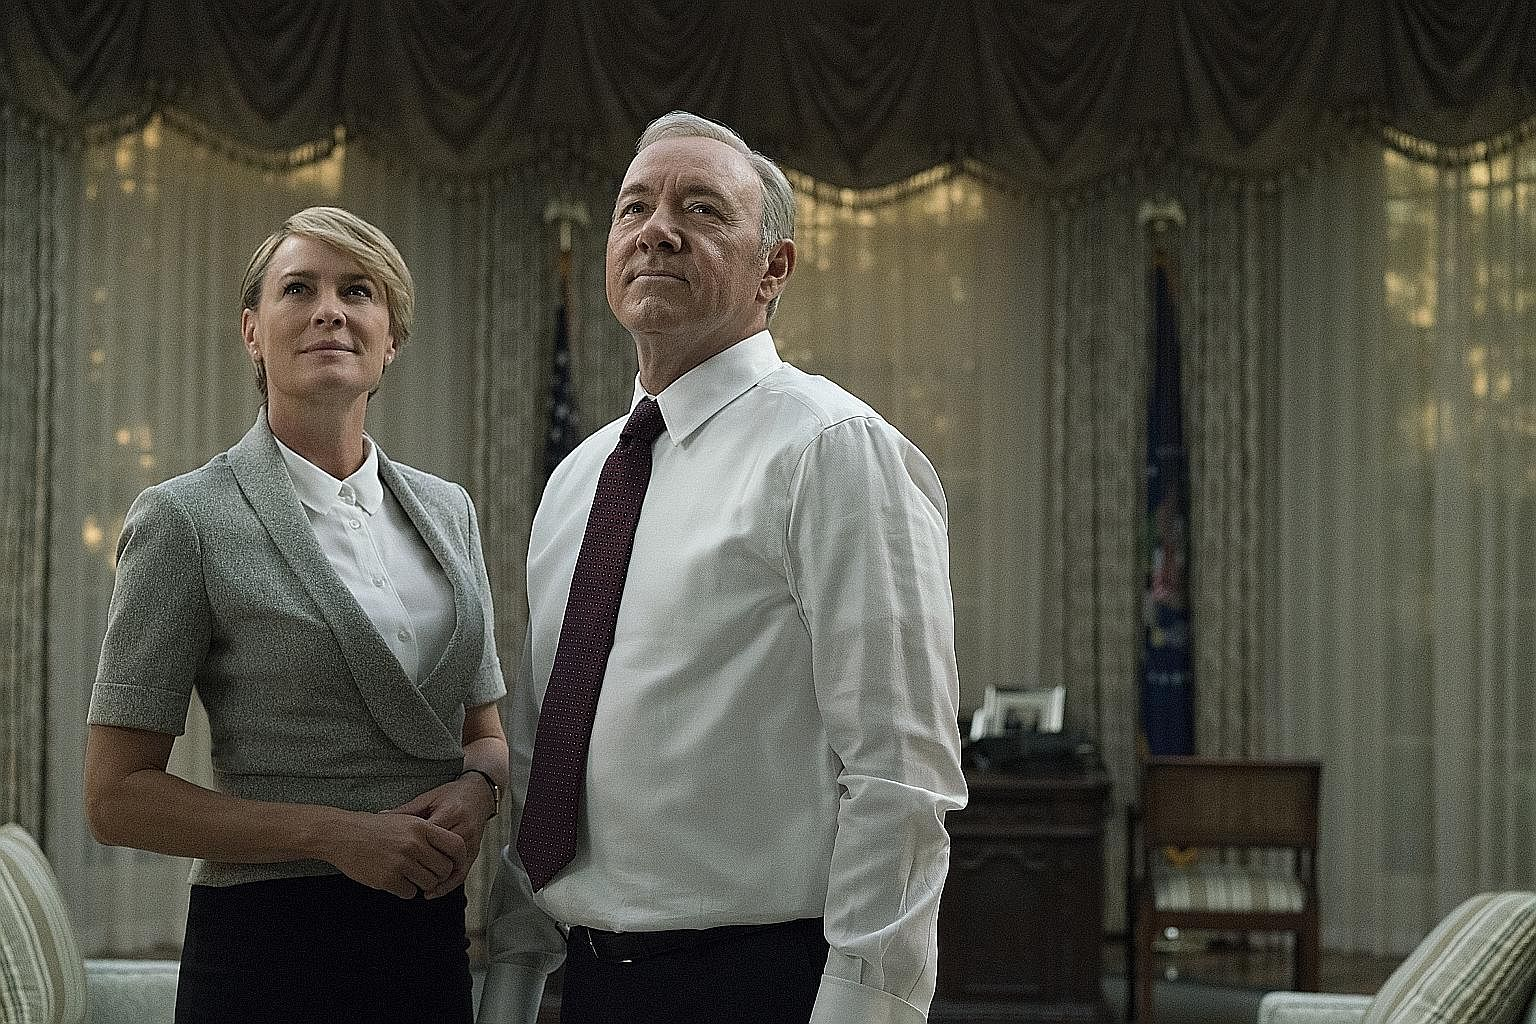 In 2013, Netflix became a content producer with the TV series House Of Cards, starring Kevin Spacey and Robin Wright. It has released more than 120 original series and films up to last September.